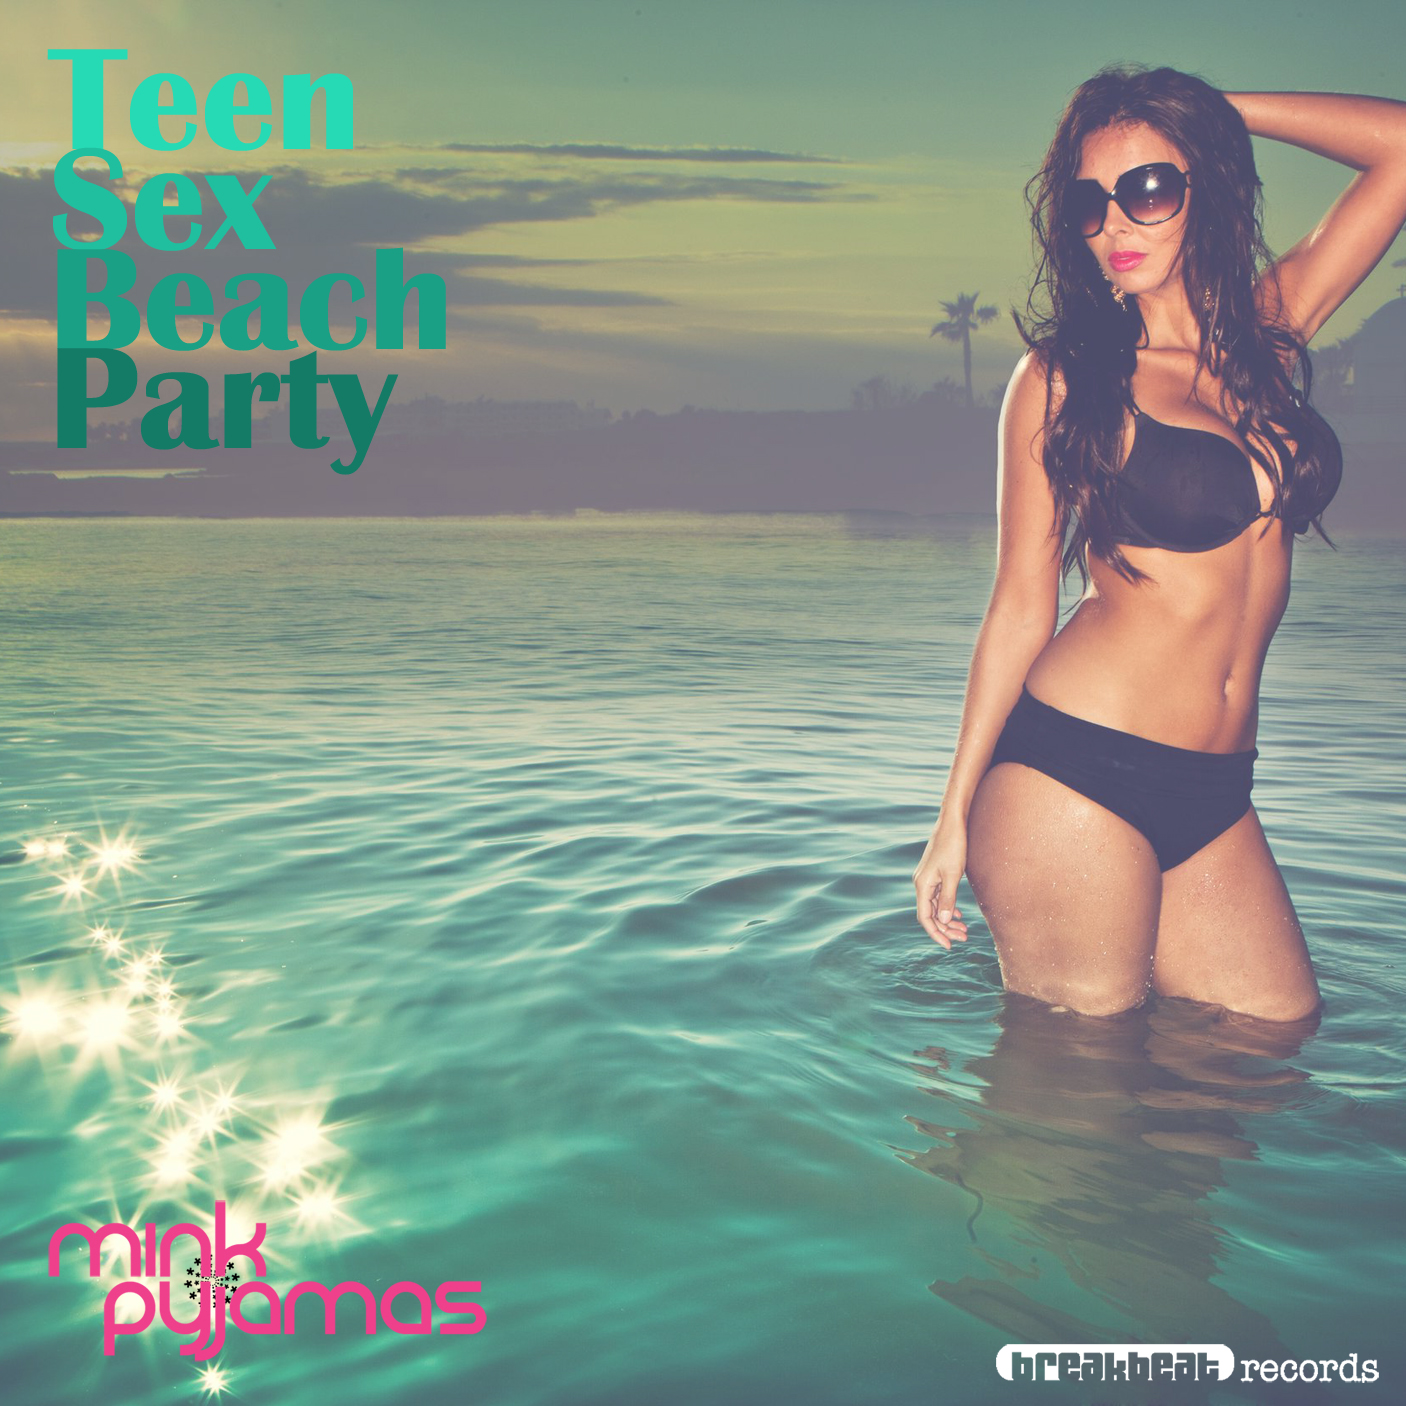 Teen Beach Party Sex